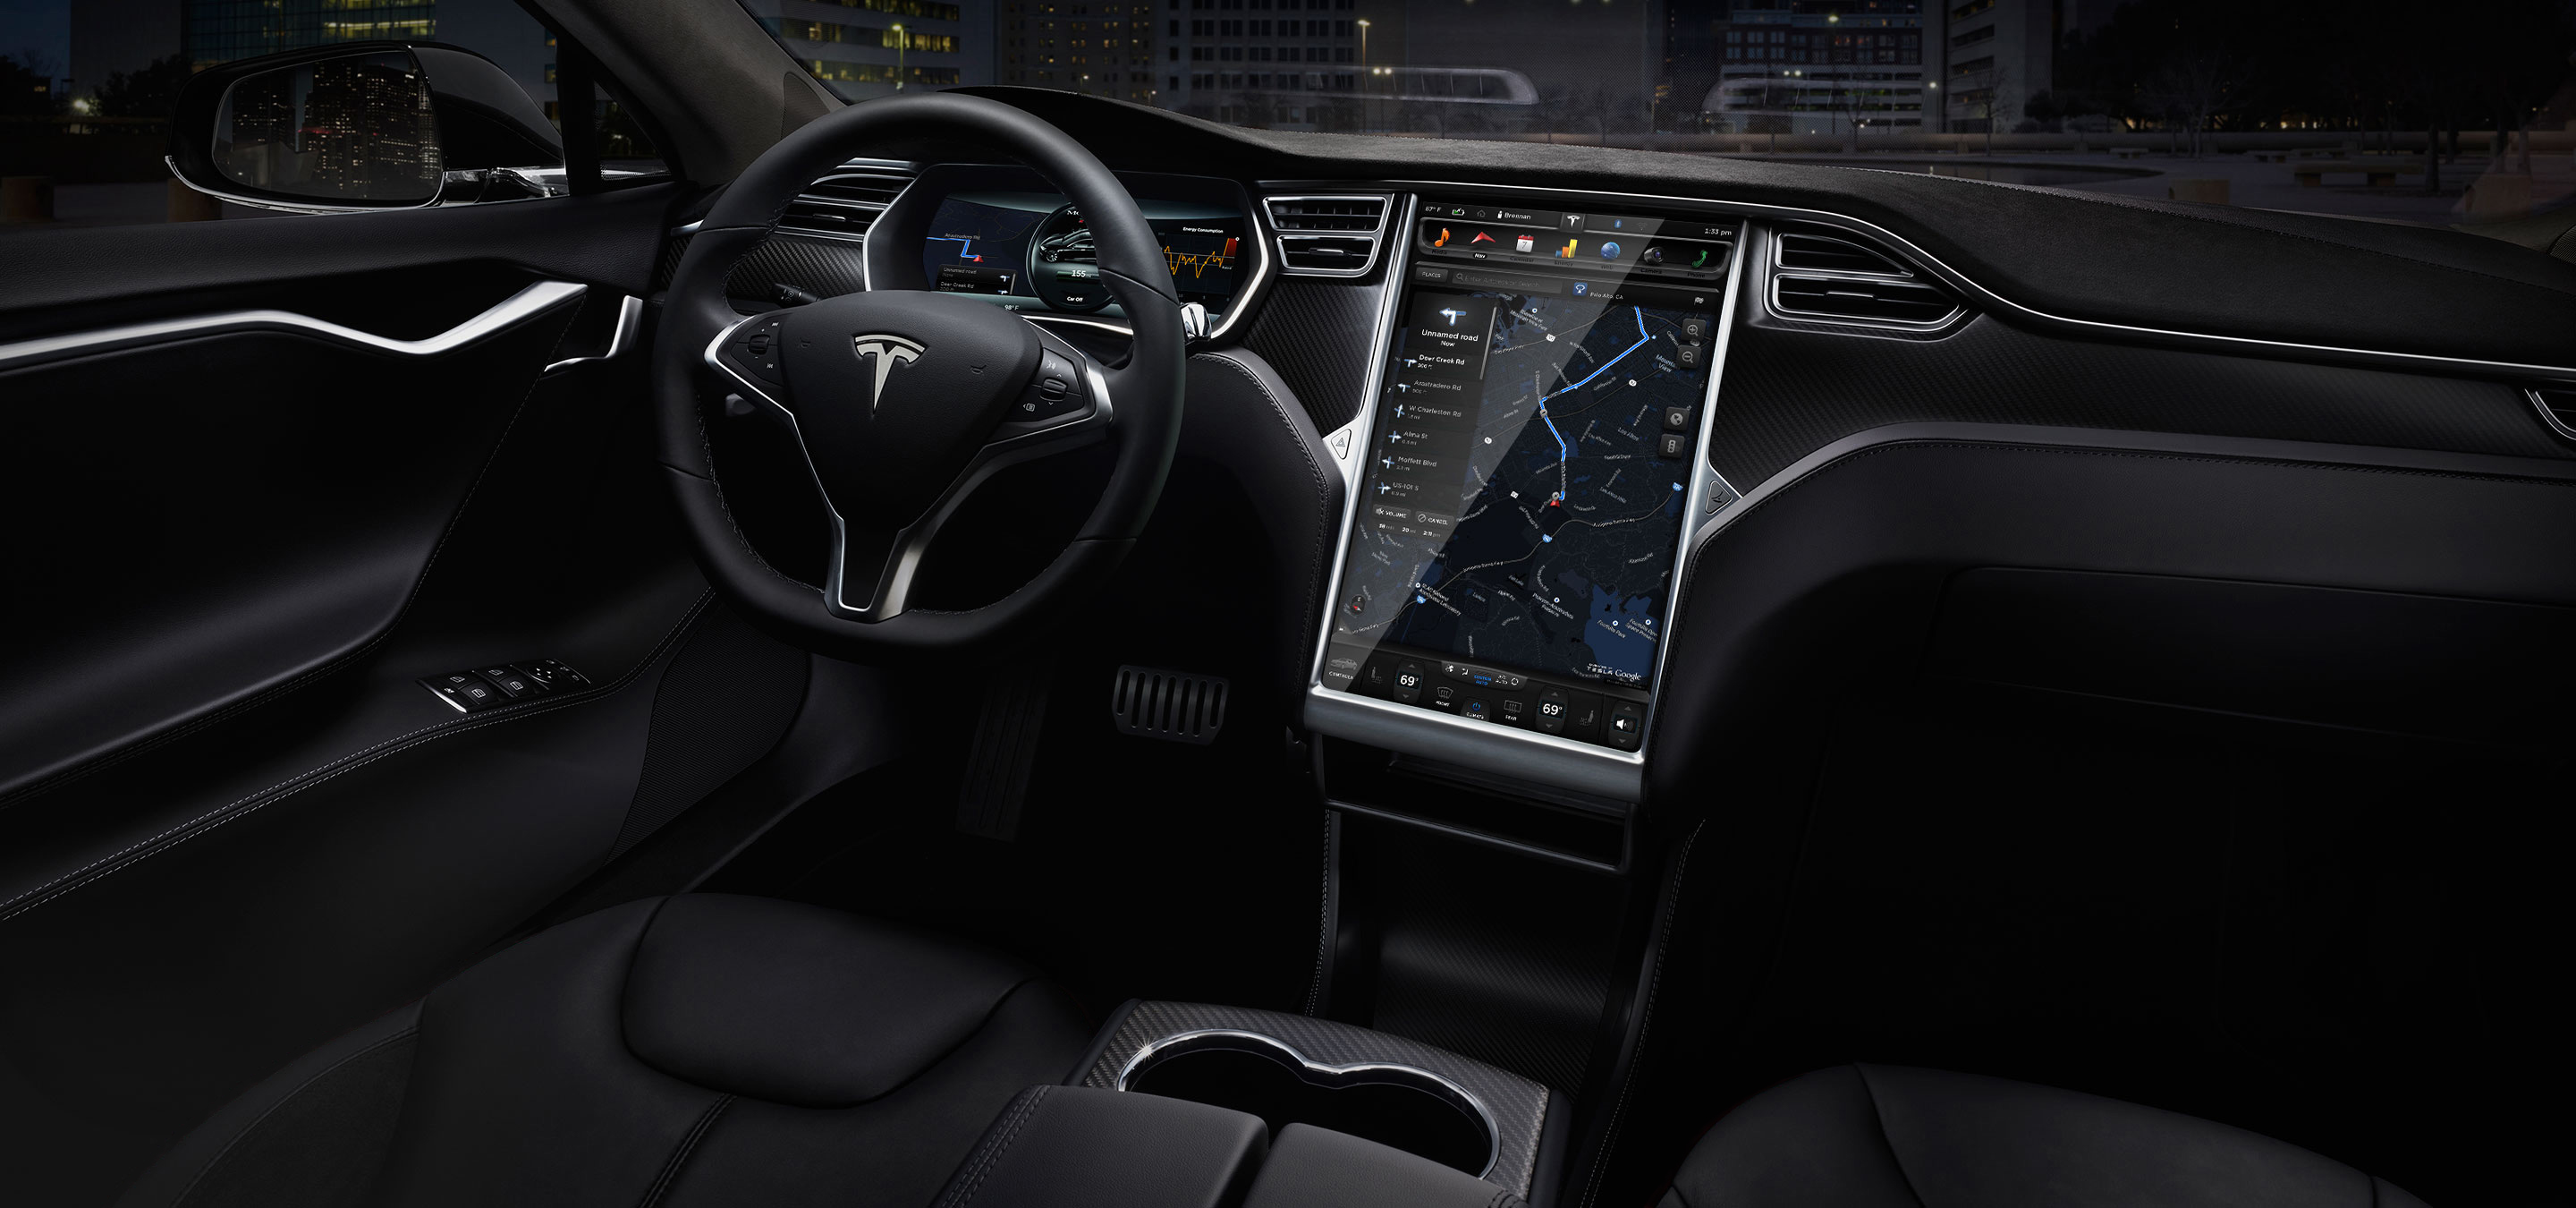 analyst thinks apple will buy tesla news. Black Bedroom Furniture Sets. Home Design Ideas